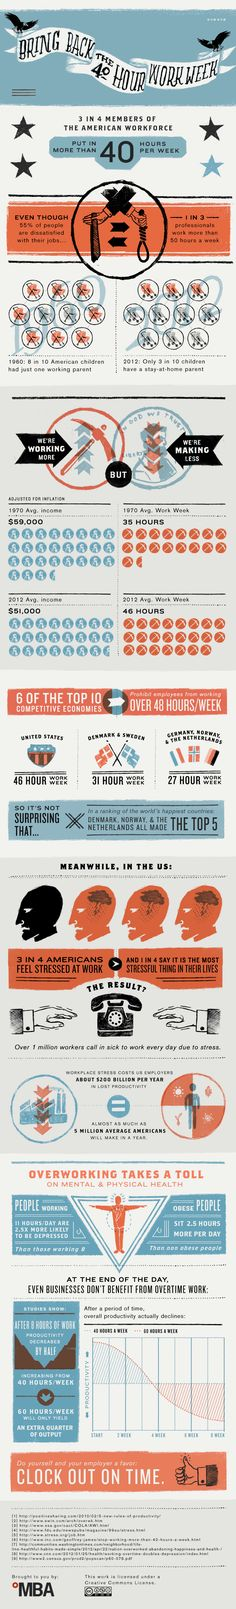 Bring Back the 40 Hour Work Week #Infographic